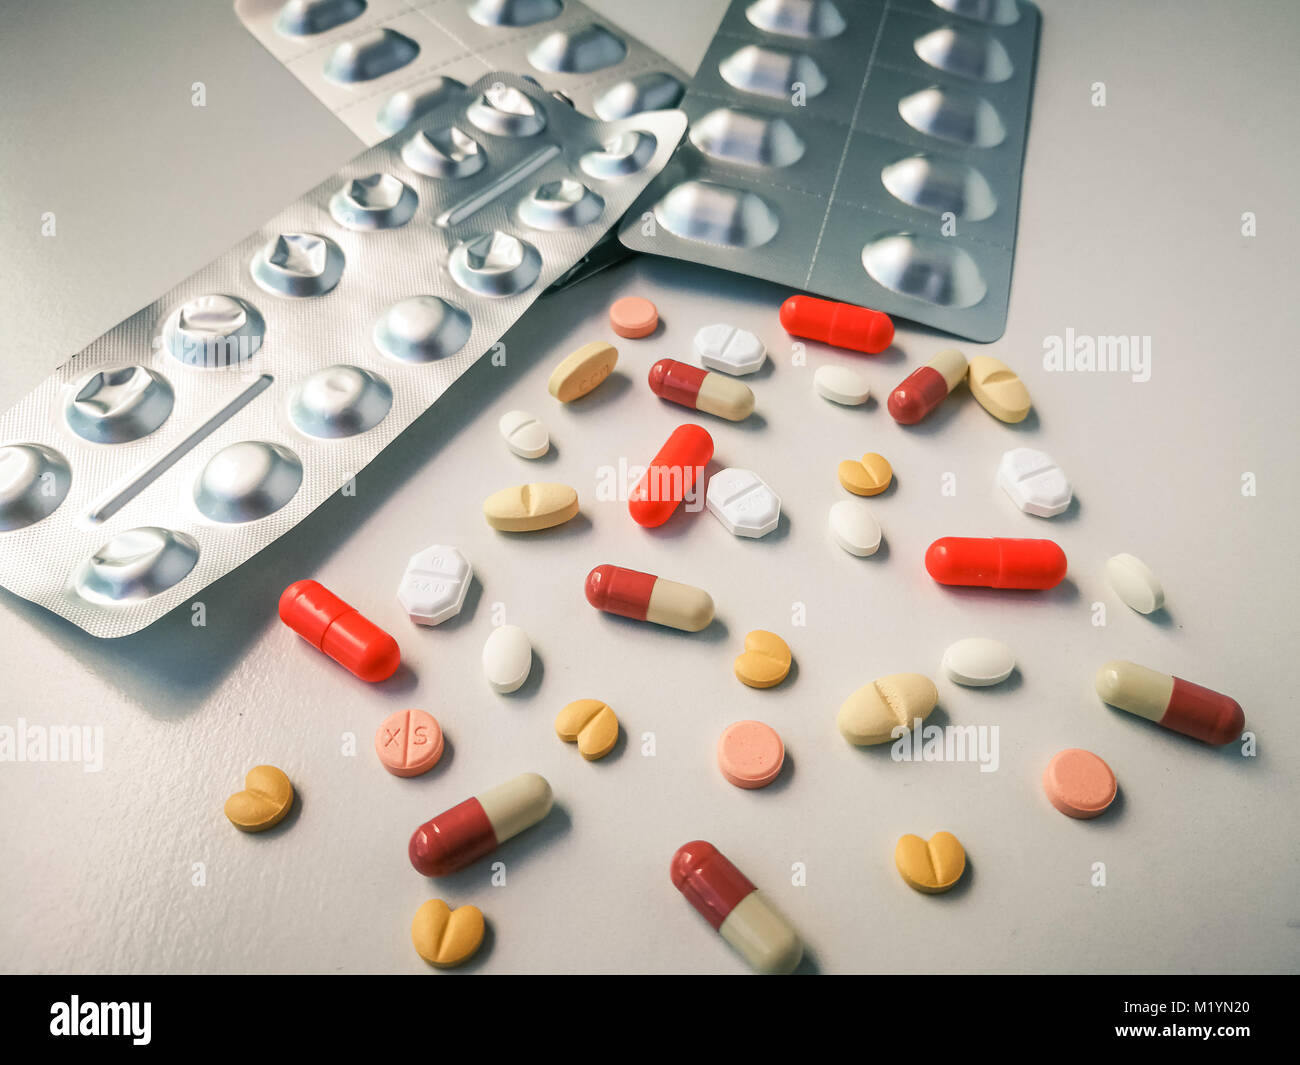 Medication white and colorful tablets arranged abstract on white color background. capsule pills for design. Health, Stock Photo